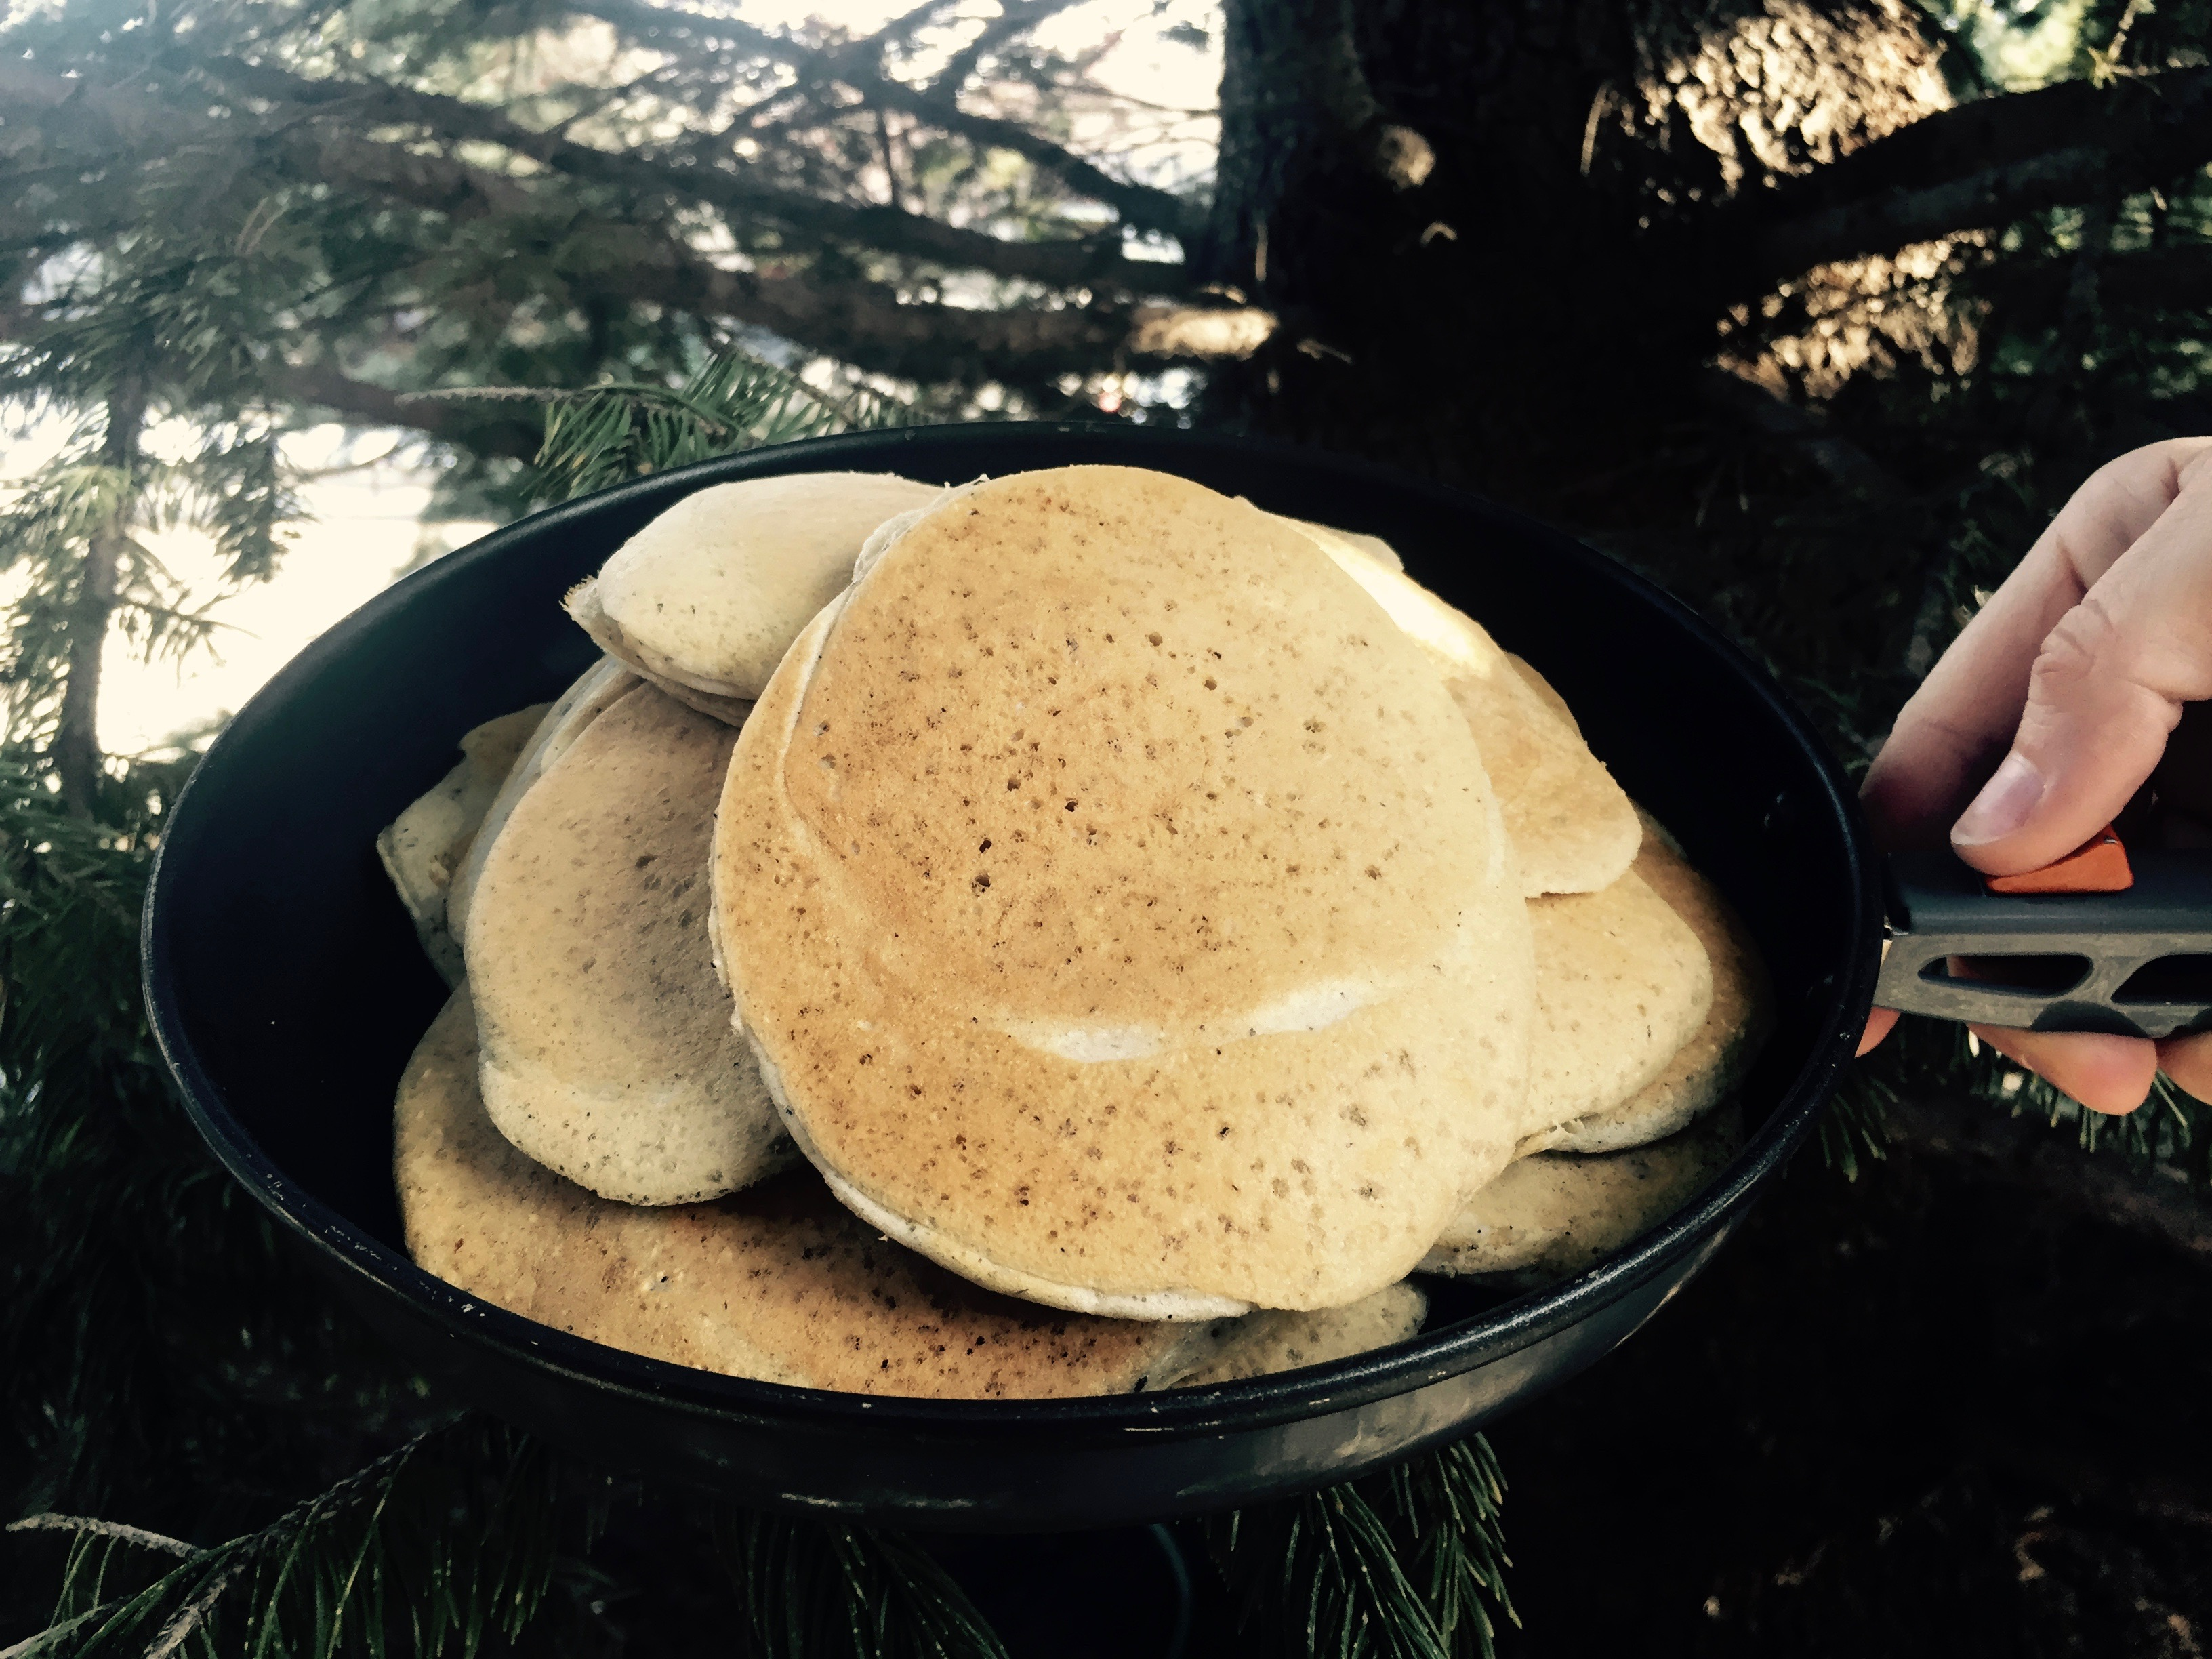 Pan full of Backcountry Protein Pancakes